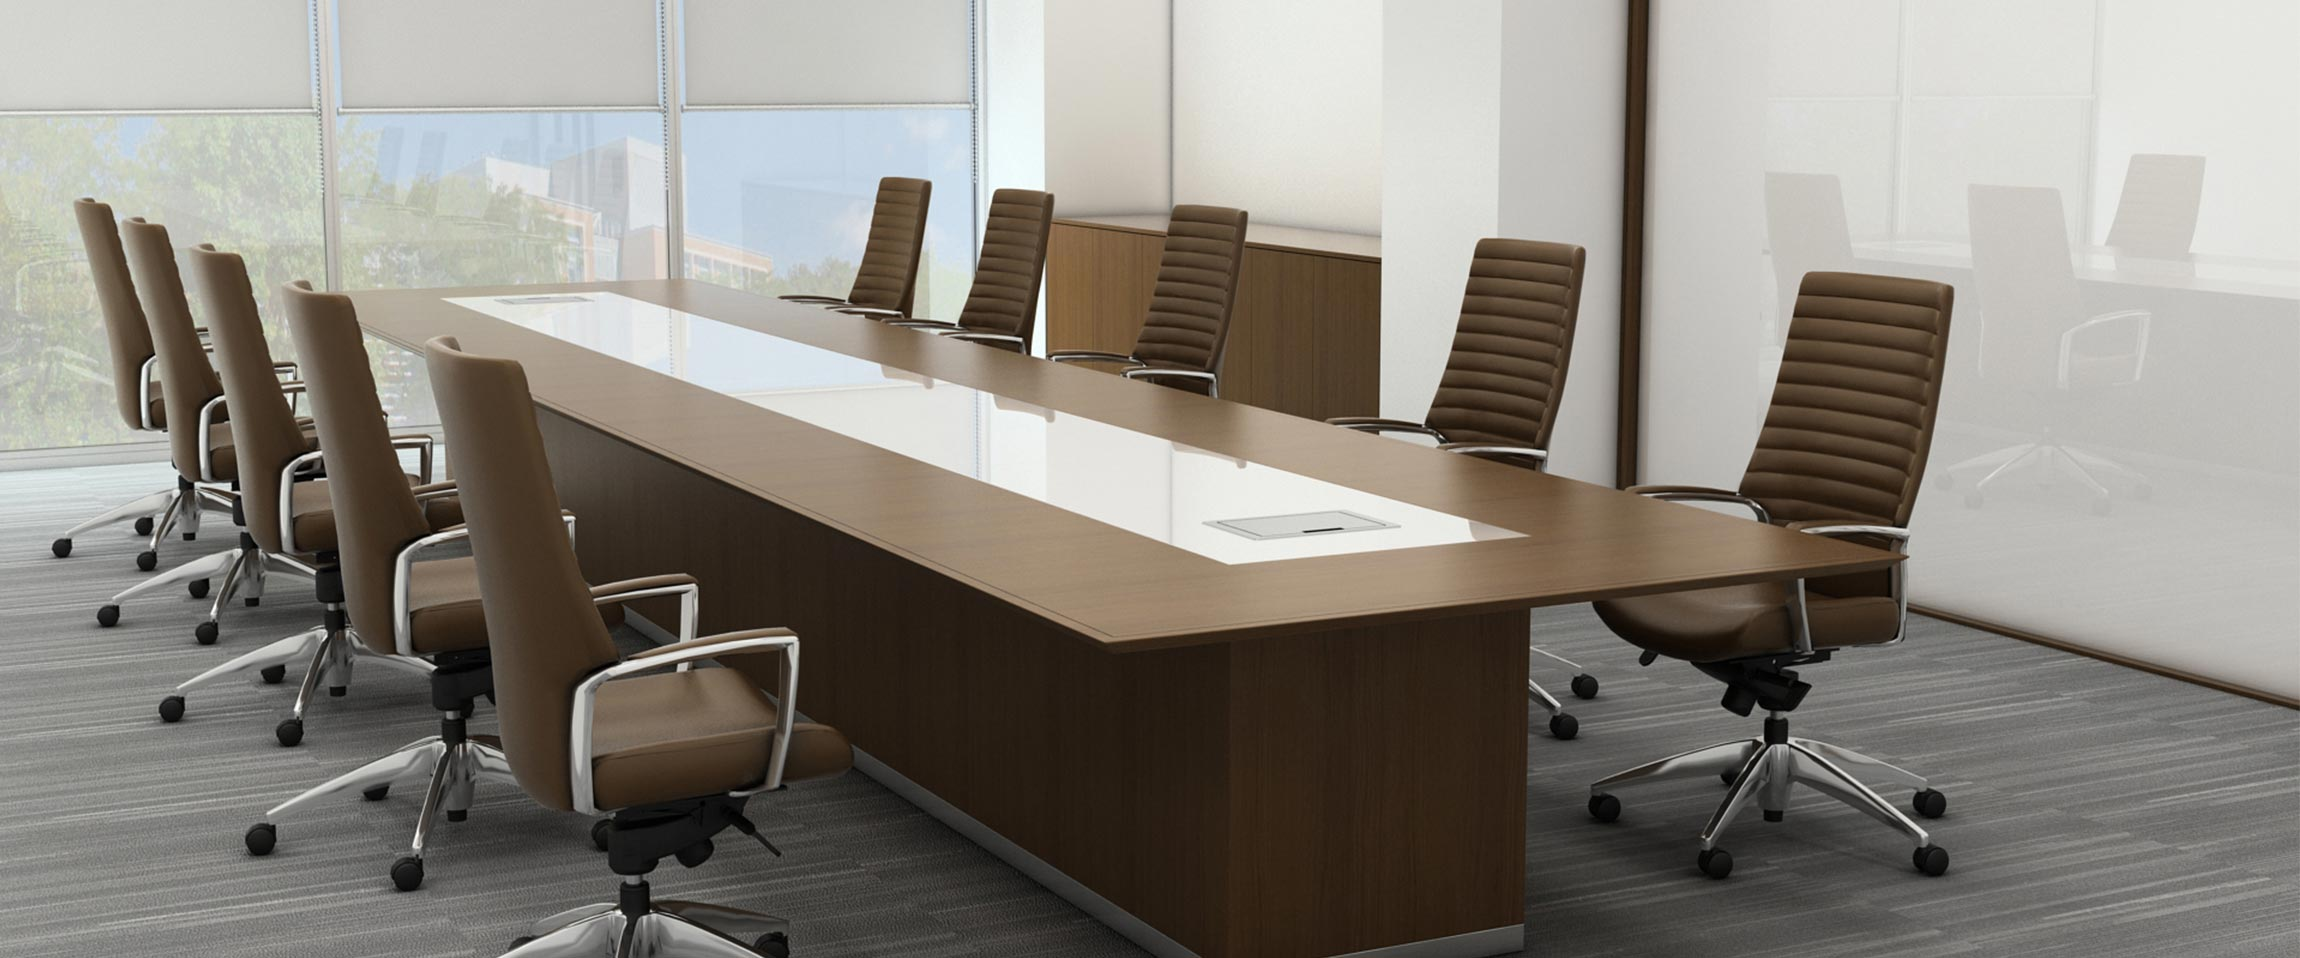 Custom Office Furniture Spring TX By Fulbright Company - Conference table bases wood